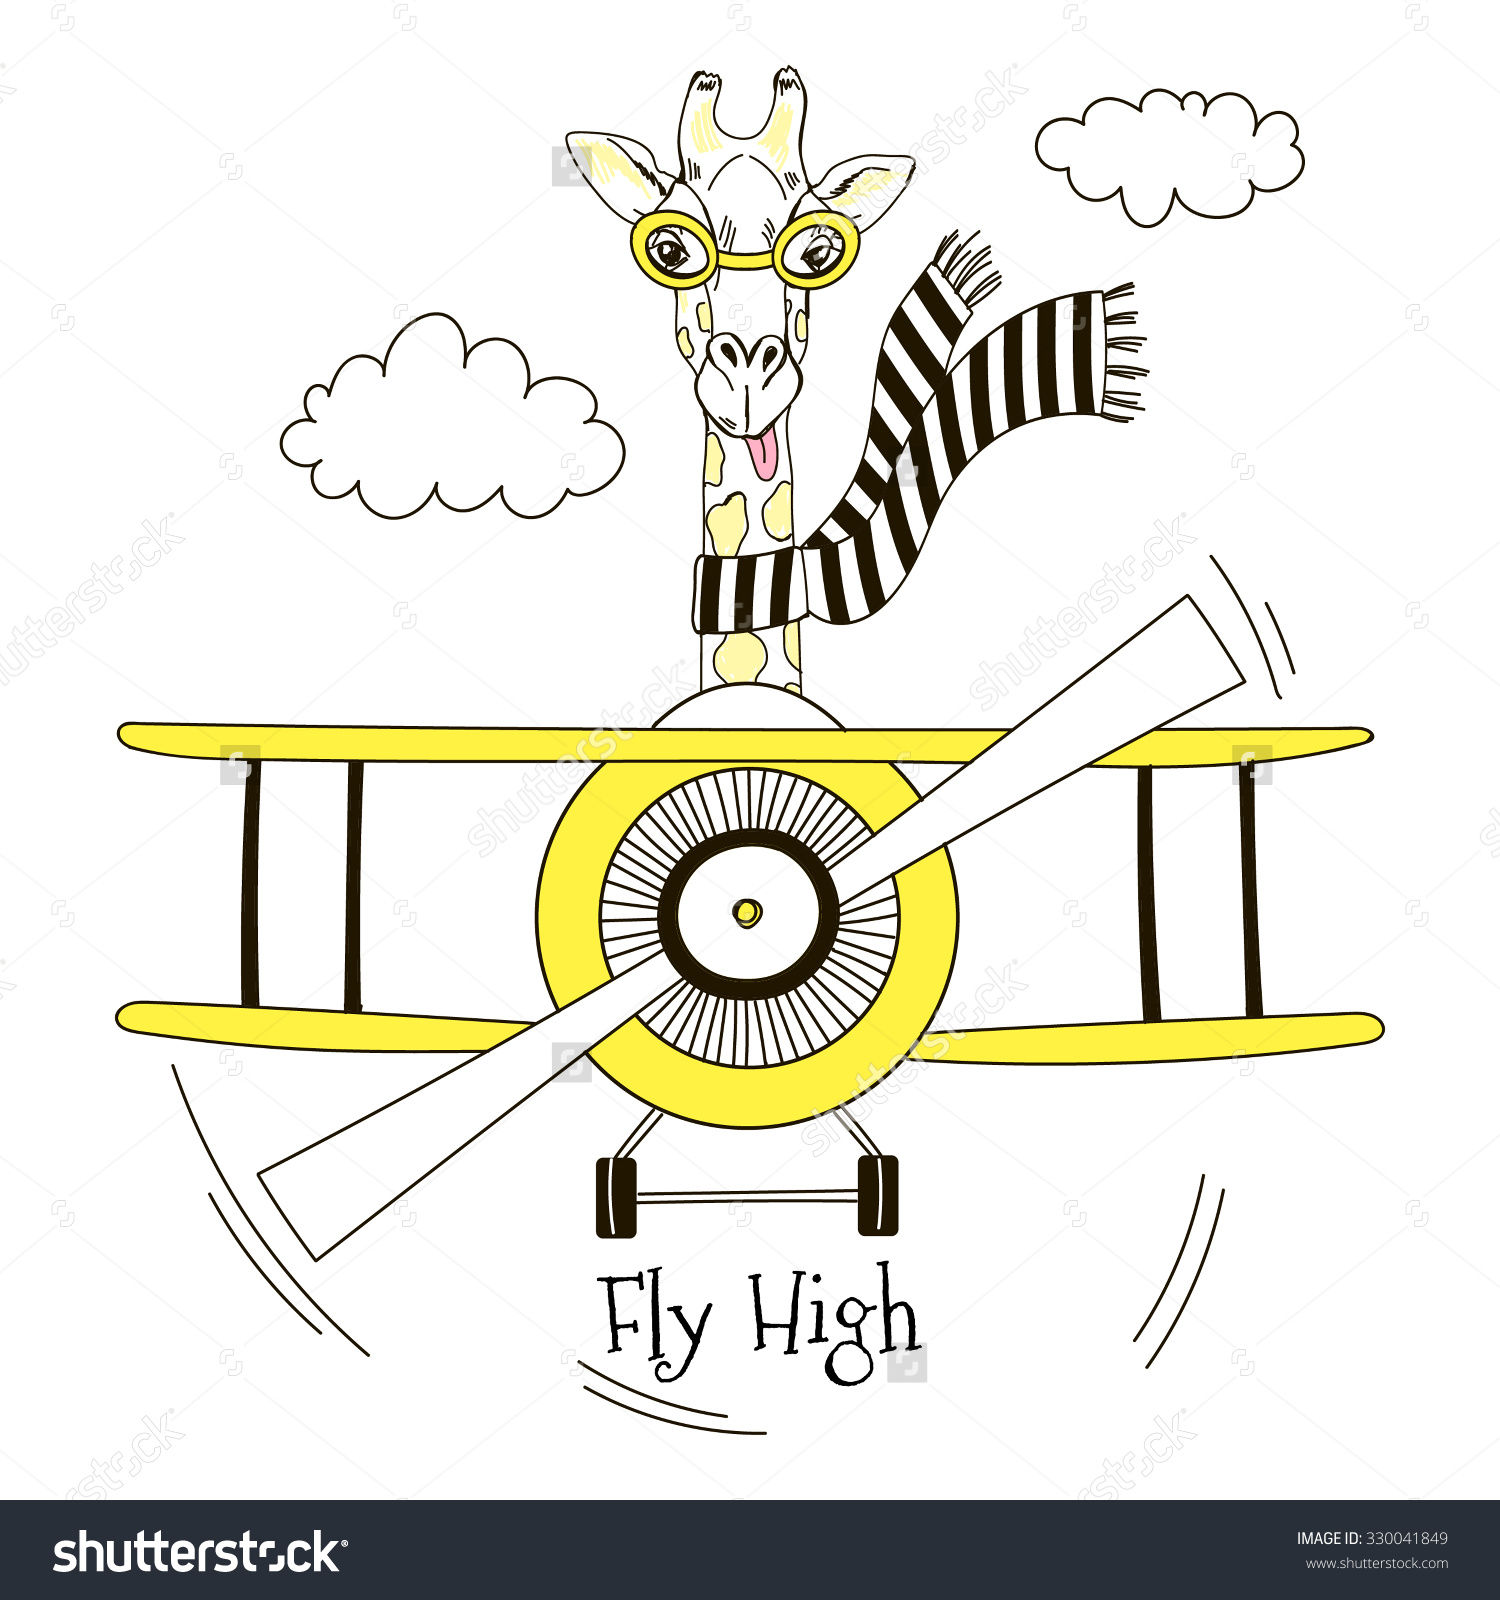 Cute giraffes in planes clipart.